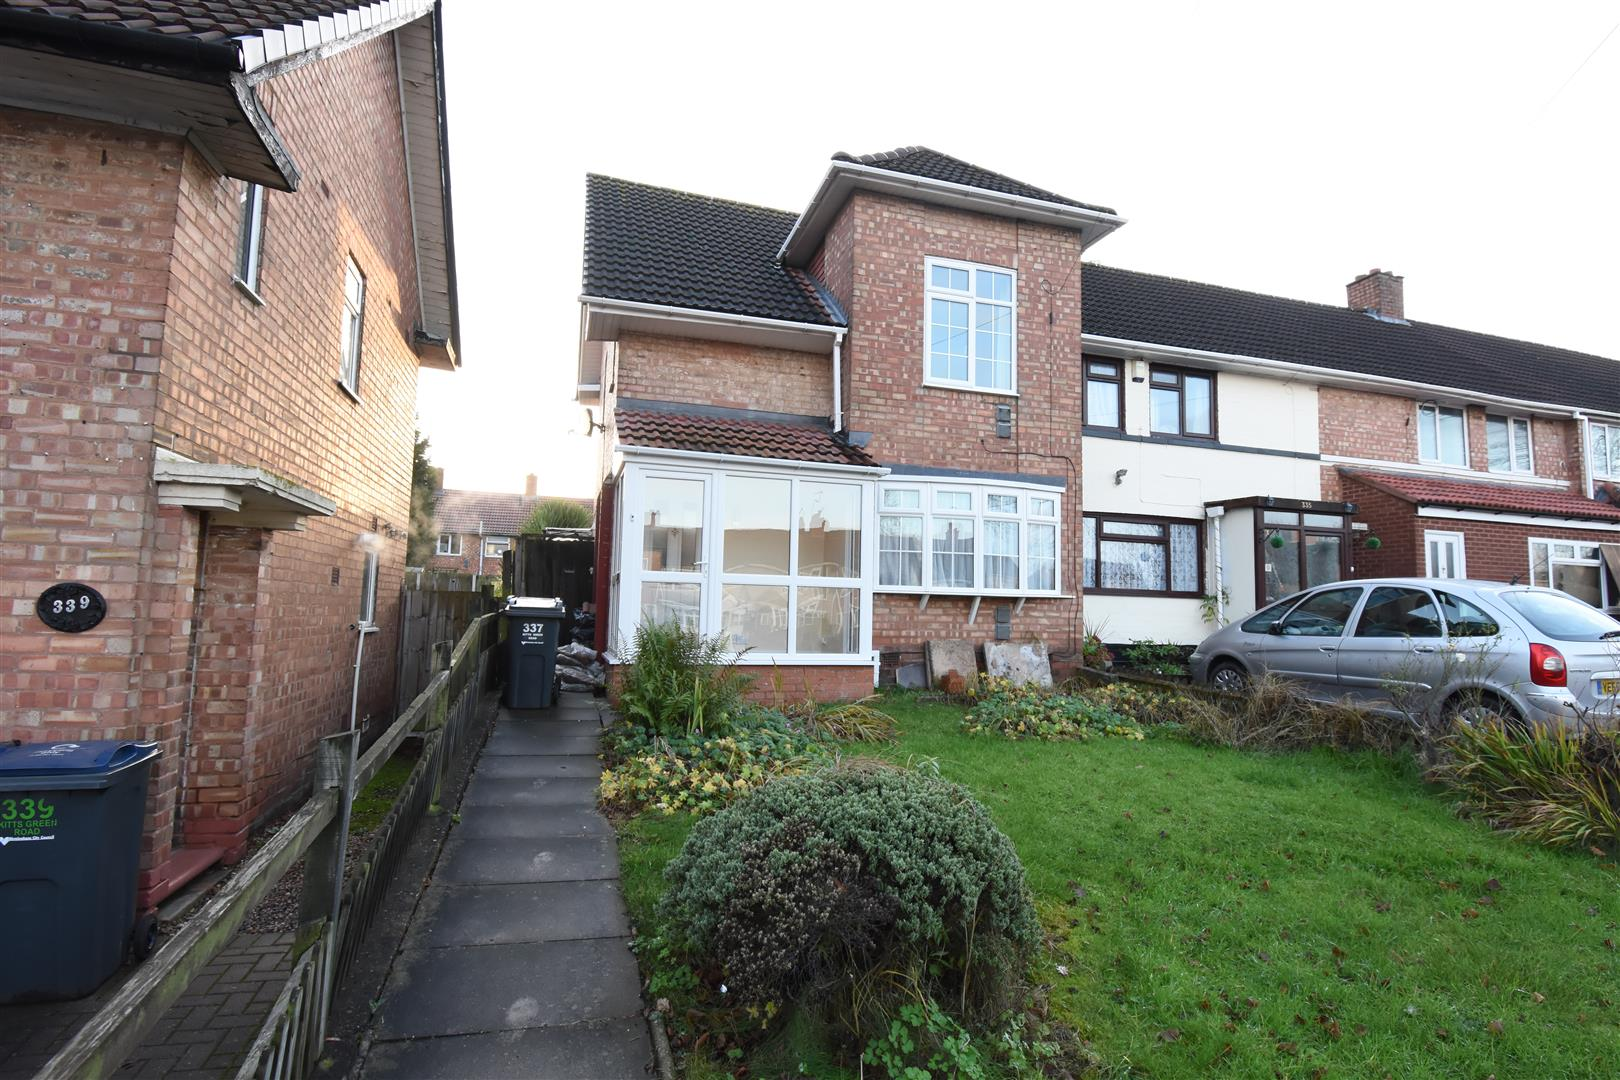 3 bed  for sale in Kitts Green Road, Kitts Green, Birmingham, B33